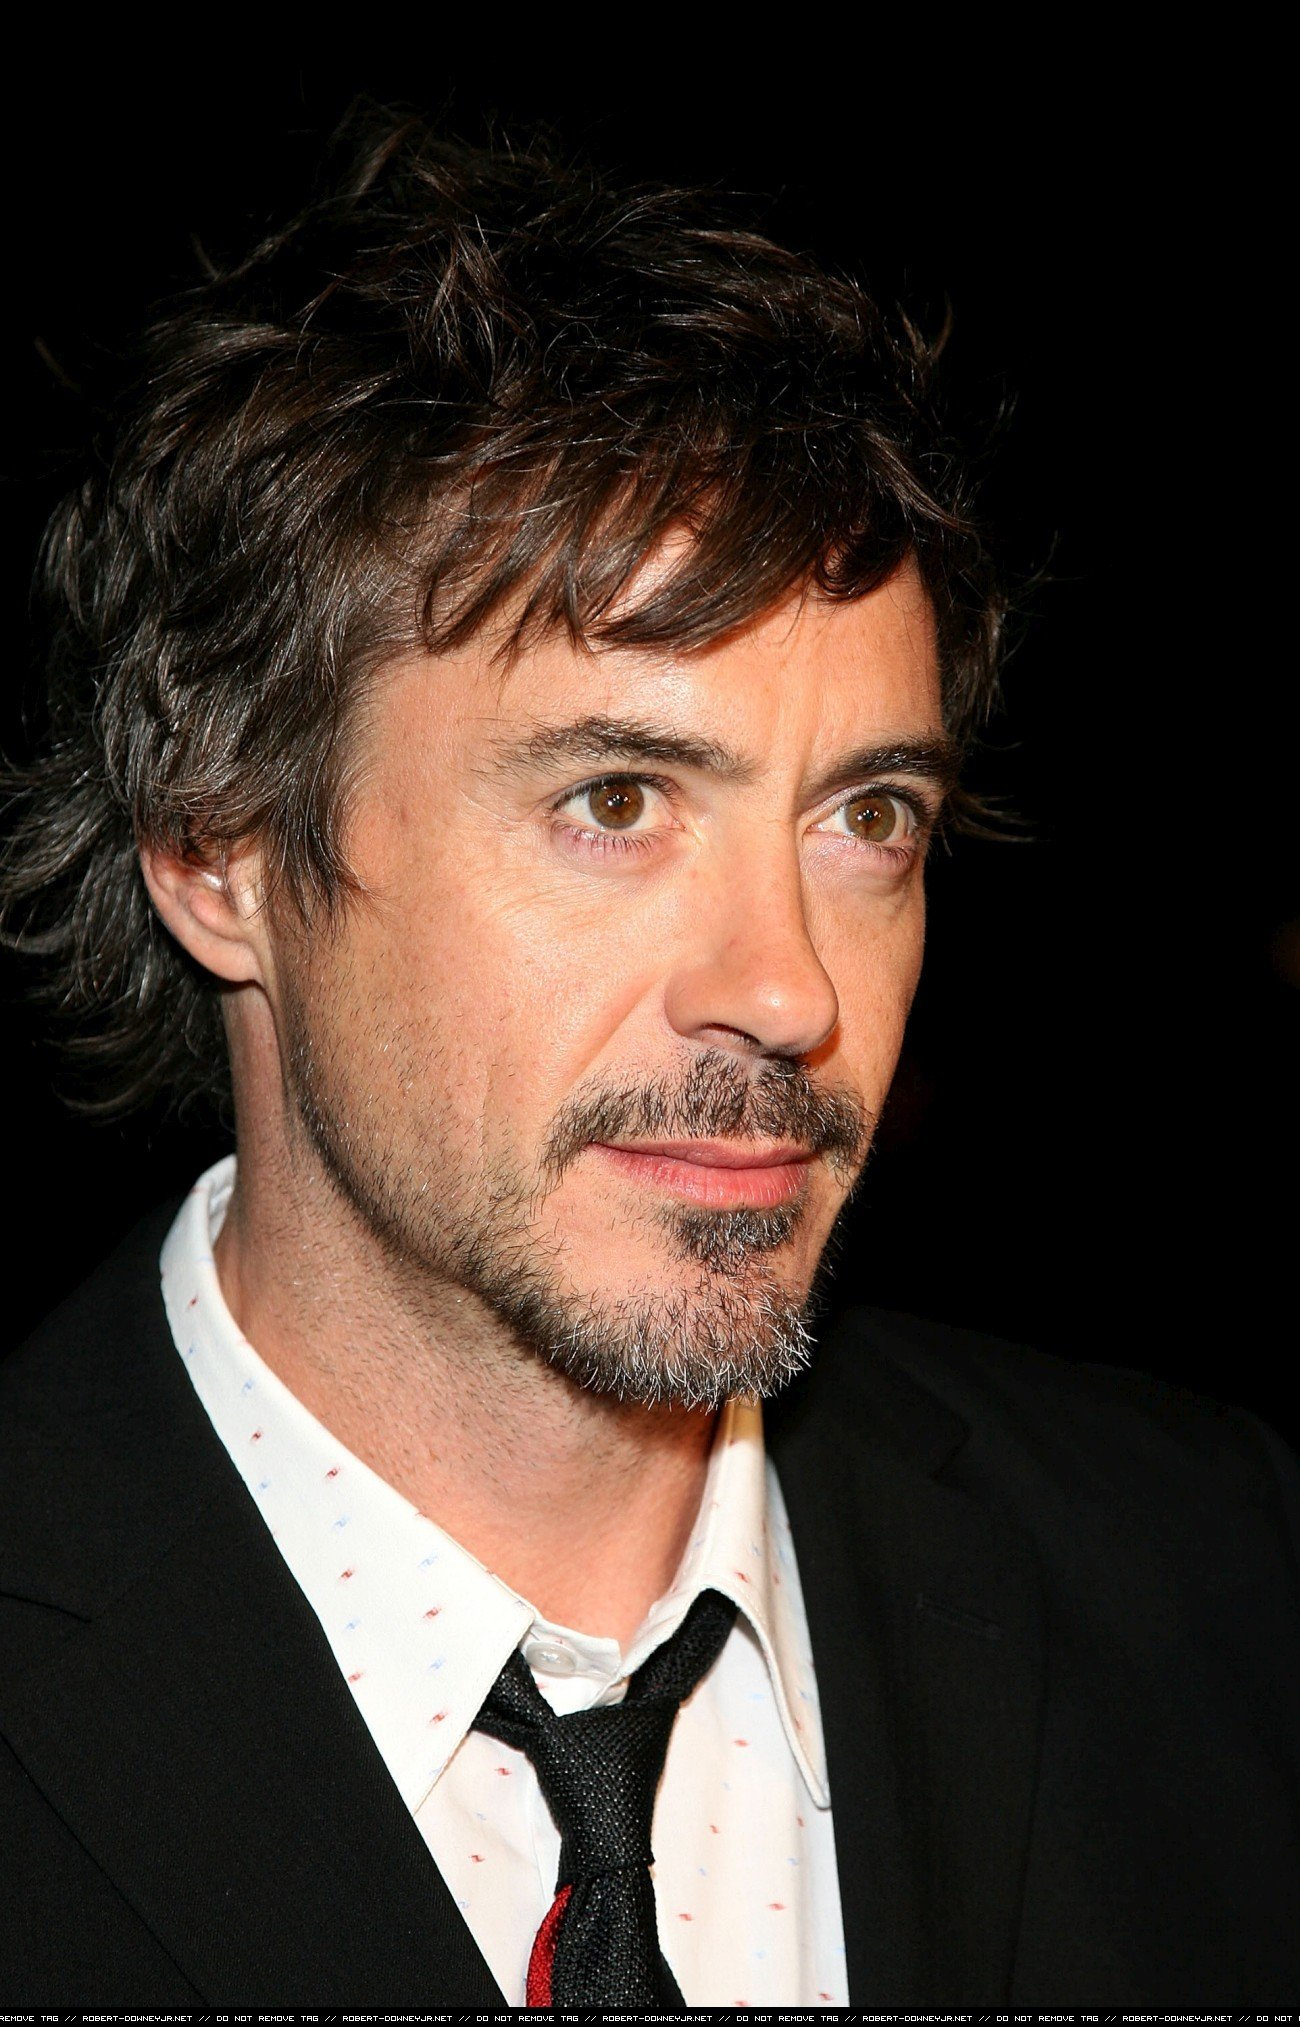 Robert Downey Jr. Pictures | MetroLyrics Robert Downey